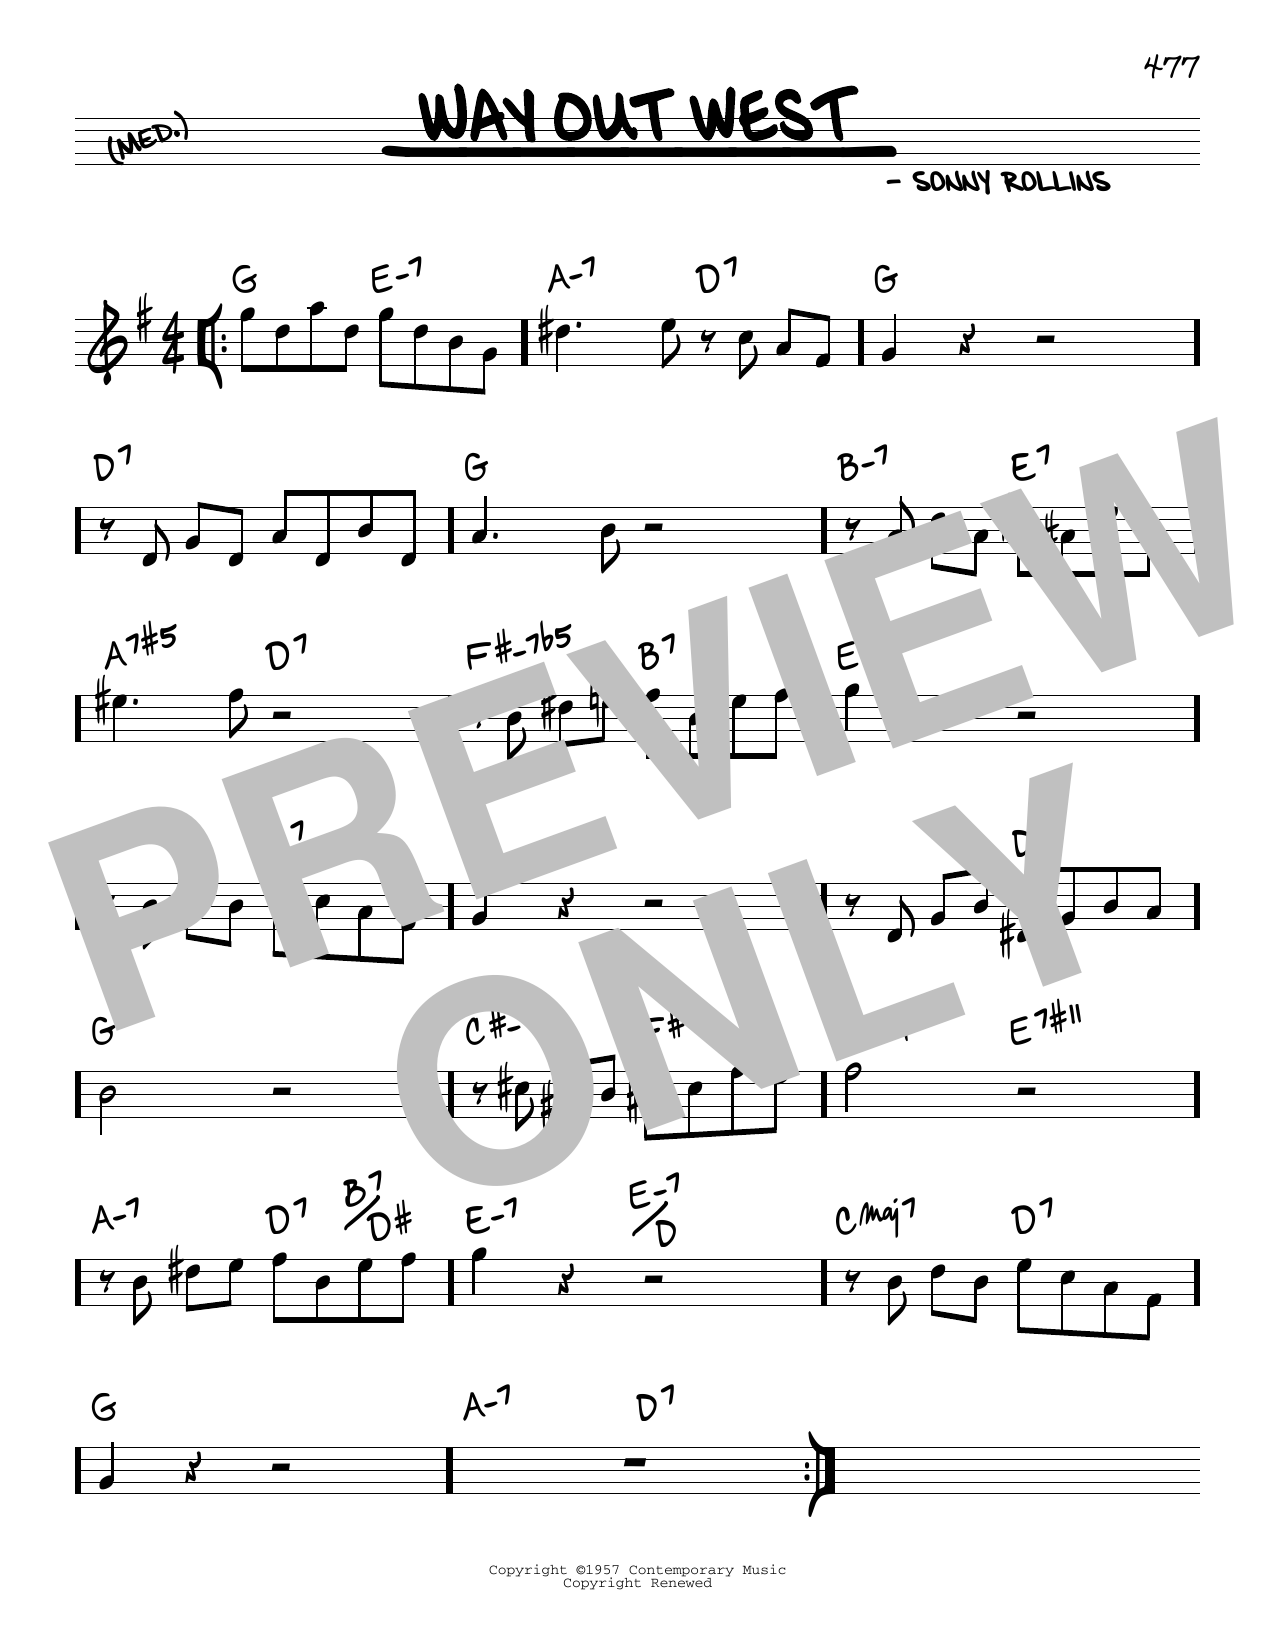 Sonny Rollins Way Out West sheet music notes and chords. Download Printable PDF.